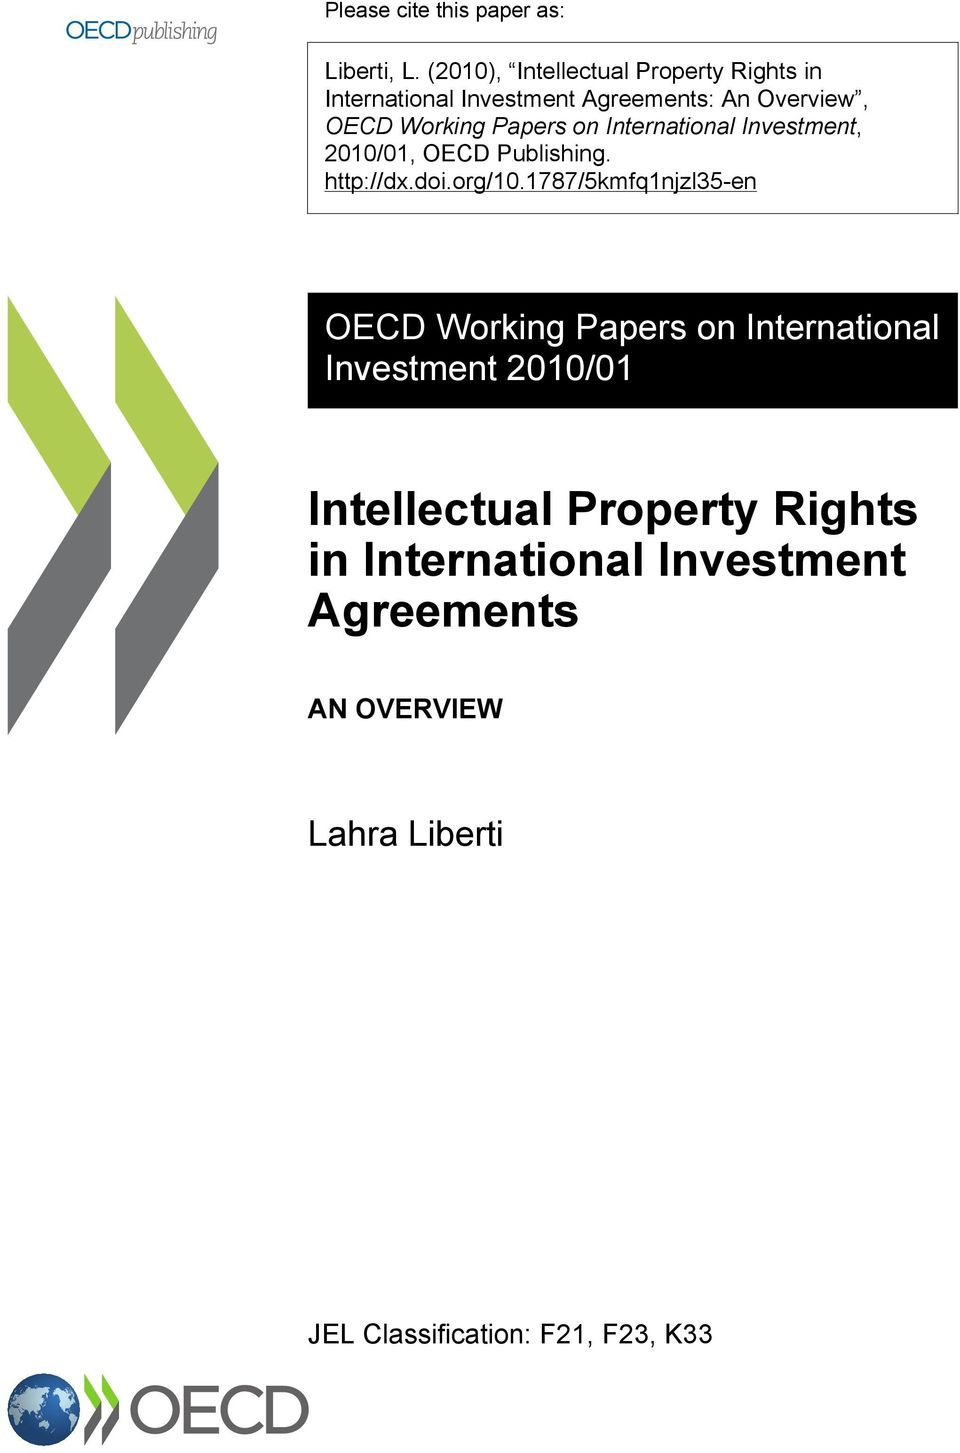 Papers on International Investment, 2010/01, OECD Publishing. http://dx.doi.org/10.